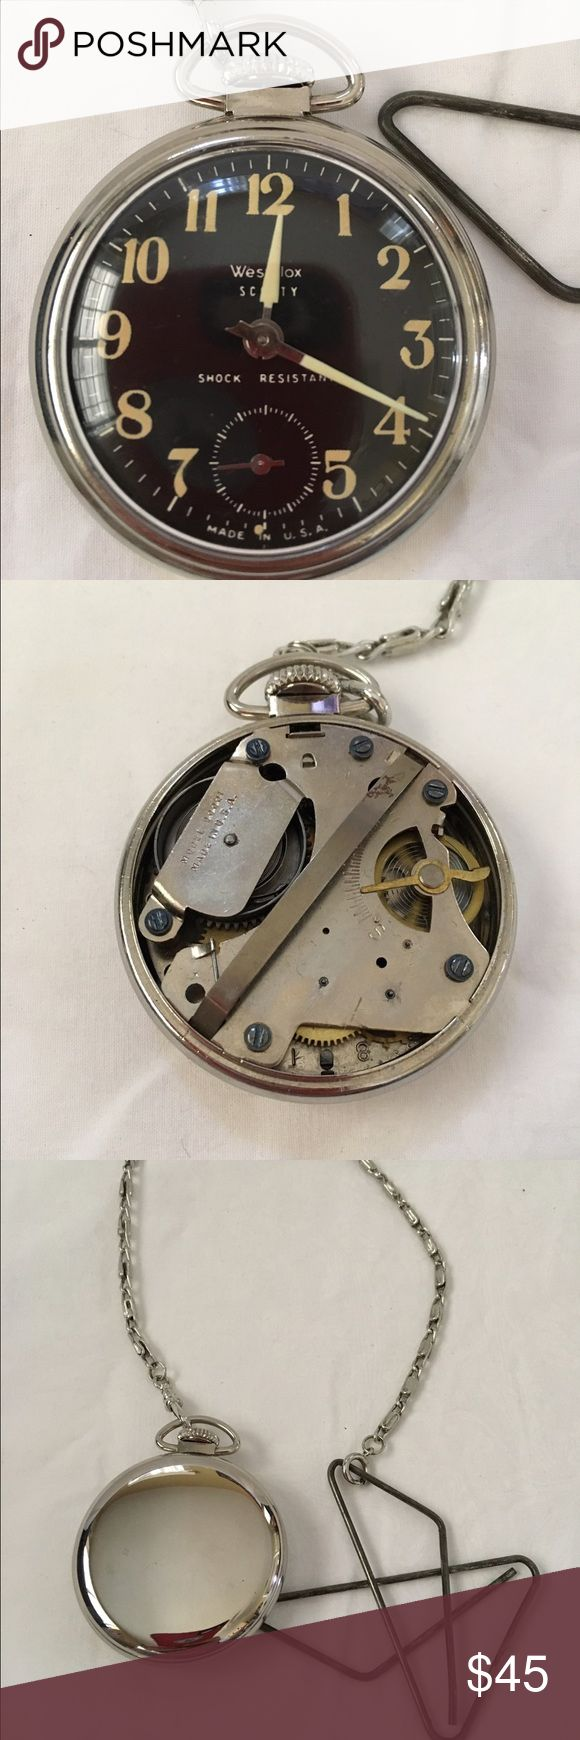 """Vintage mechanical pocket watch westclox Scotty This vintage Scotty pocket watch is circa 1960's. It's been keeping time for 48 hours. The luminous dial and hands look great.  The chain has been repaired with wire in one spot.  It measures approximately 2"""" across. Vintage Accessories Watches"""